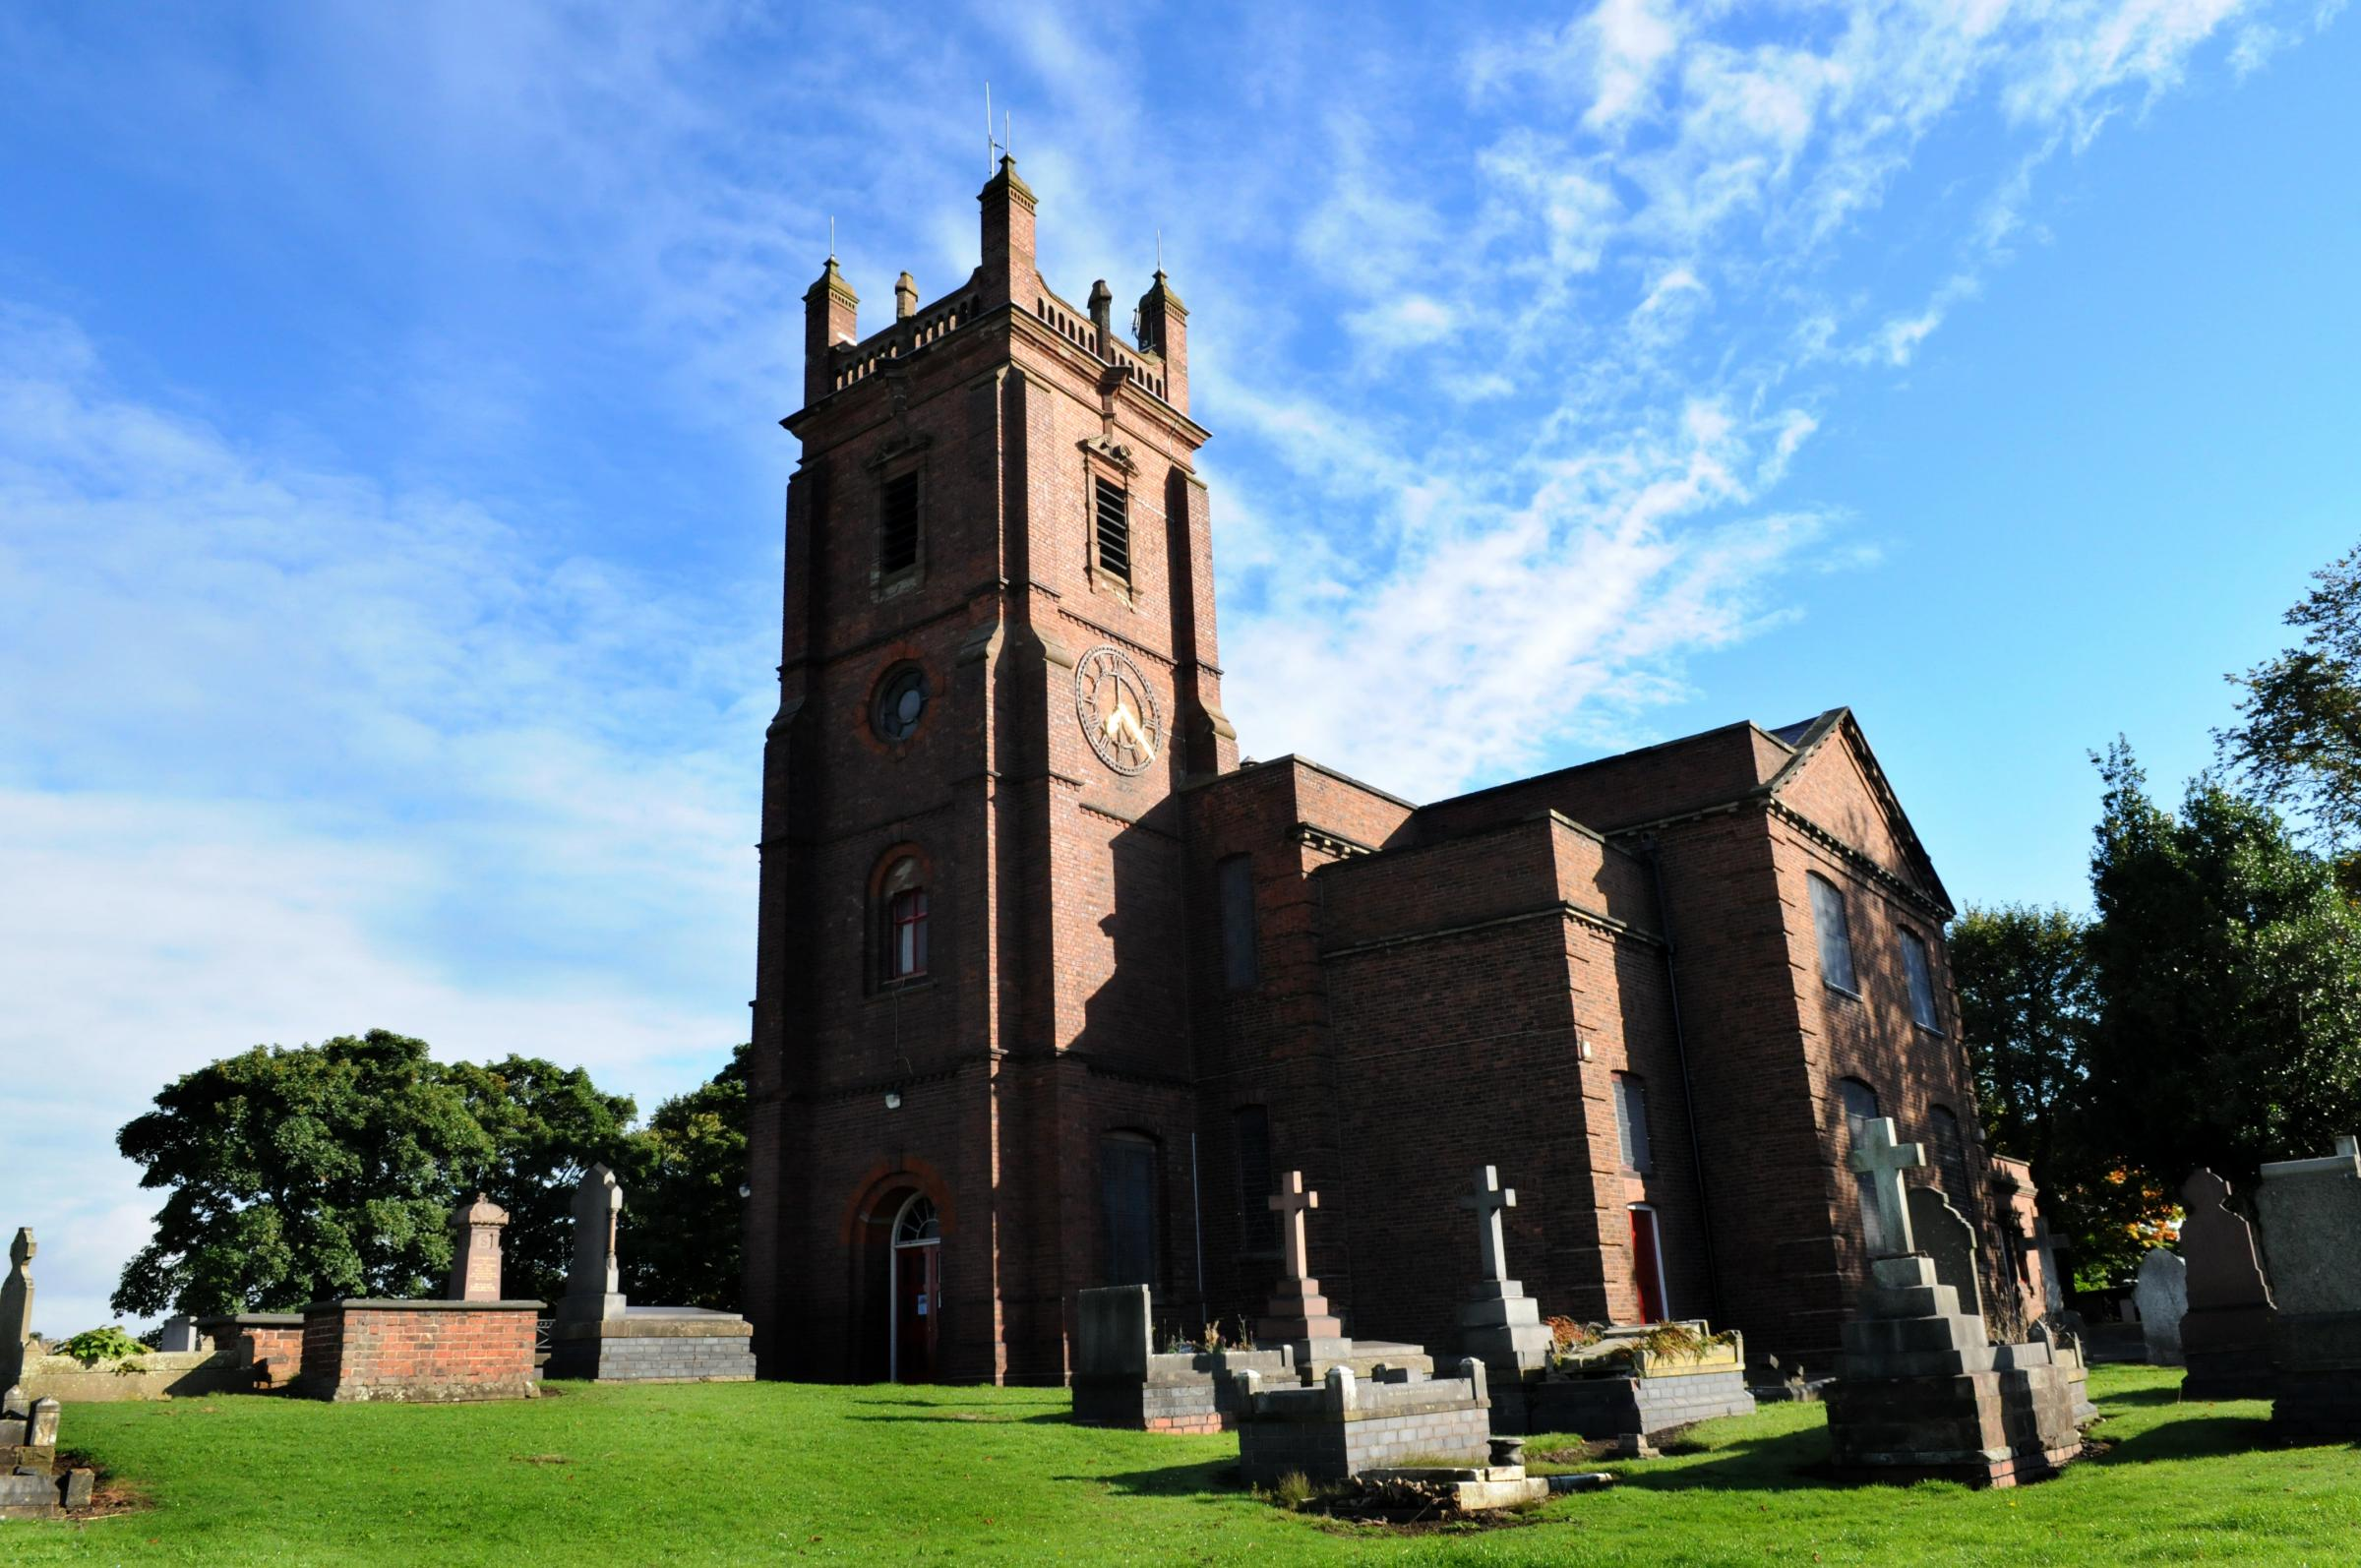 Brierley Hill churches to be part of Heritage Open Days scheme